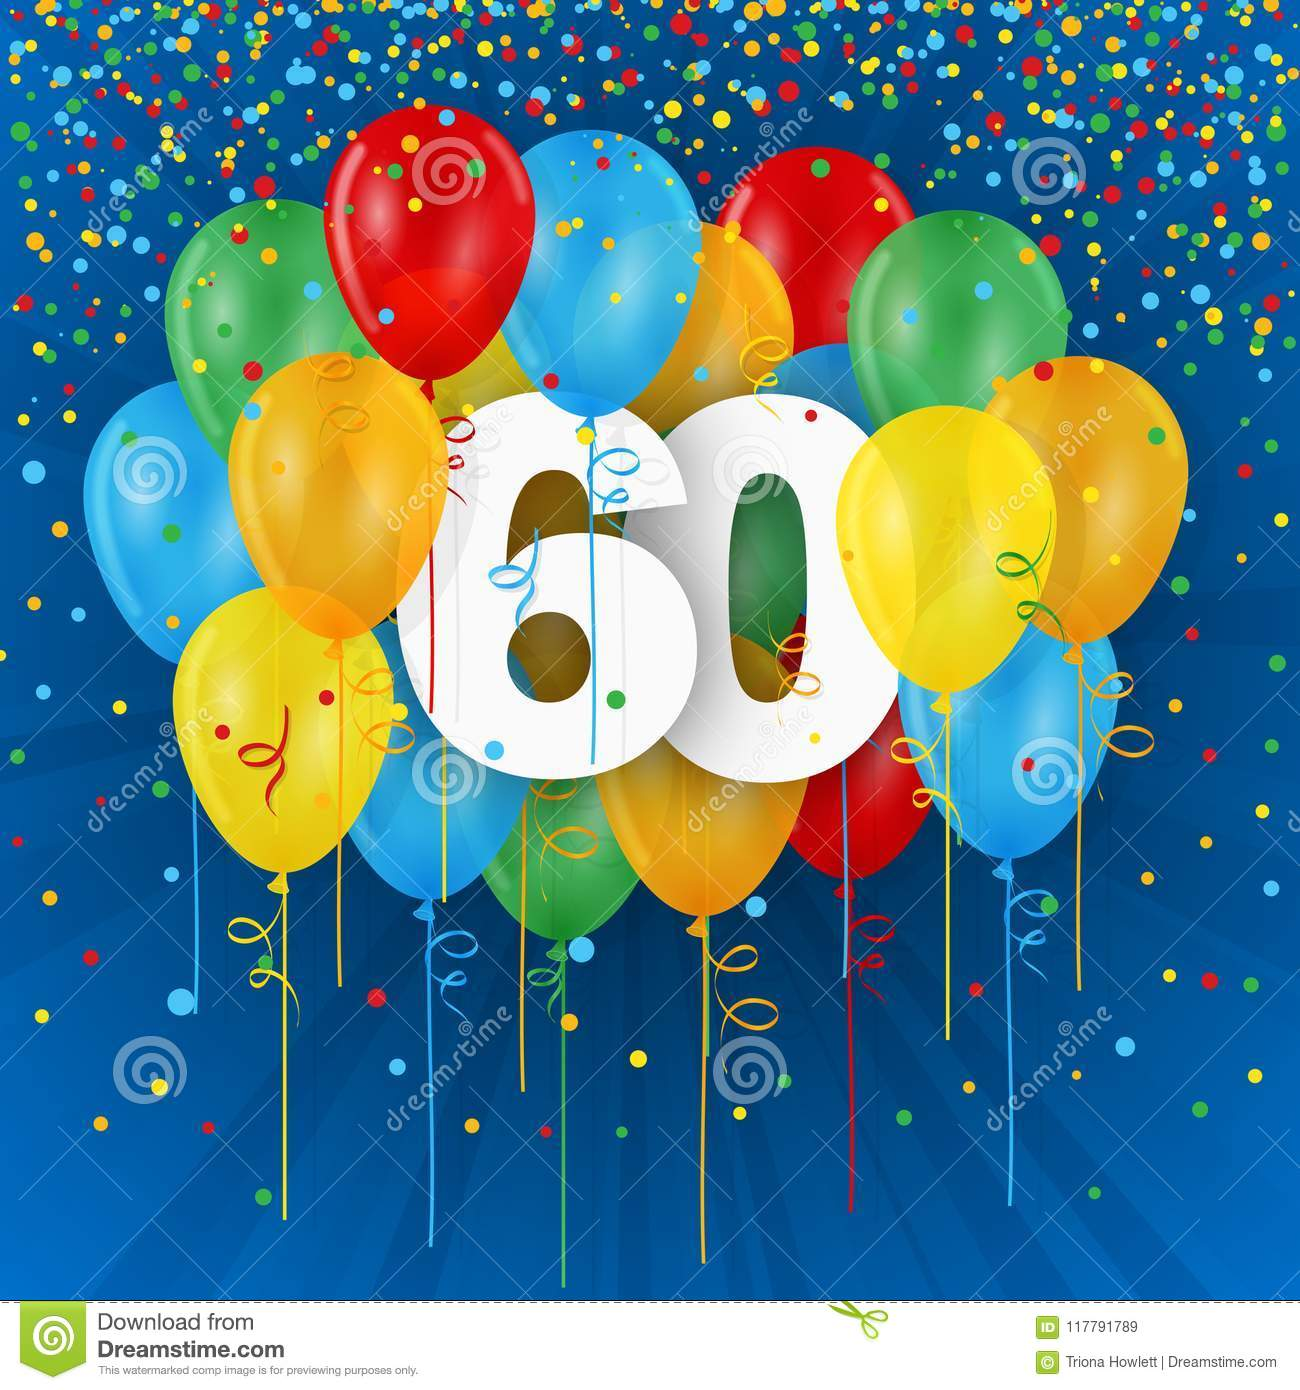 Happy 60th Birthday / Anniversary card with balloons